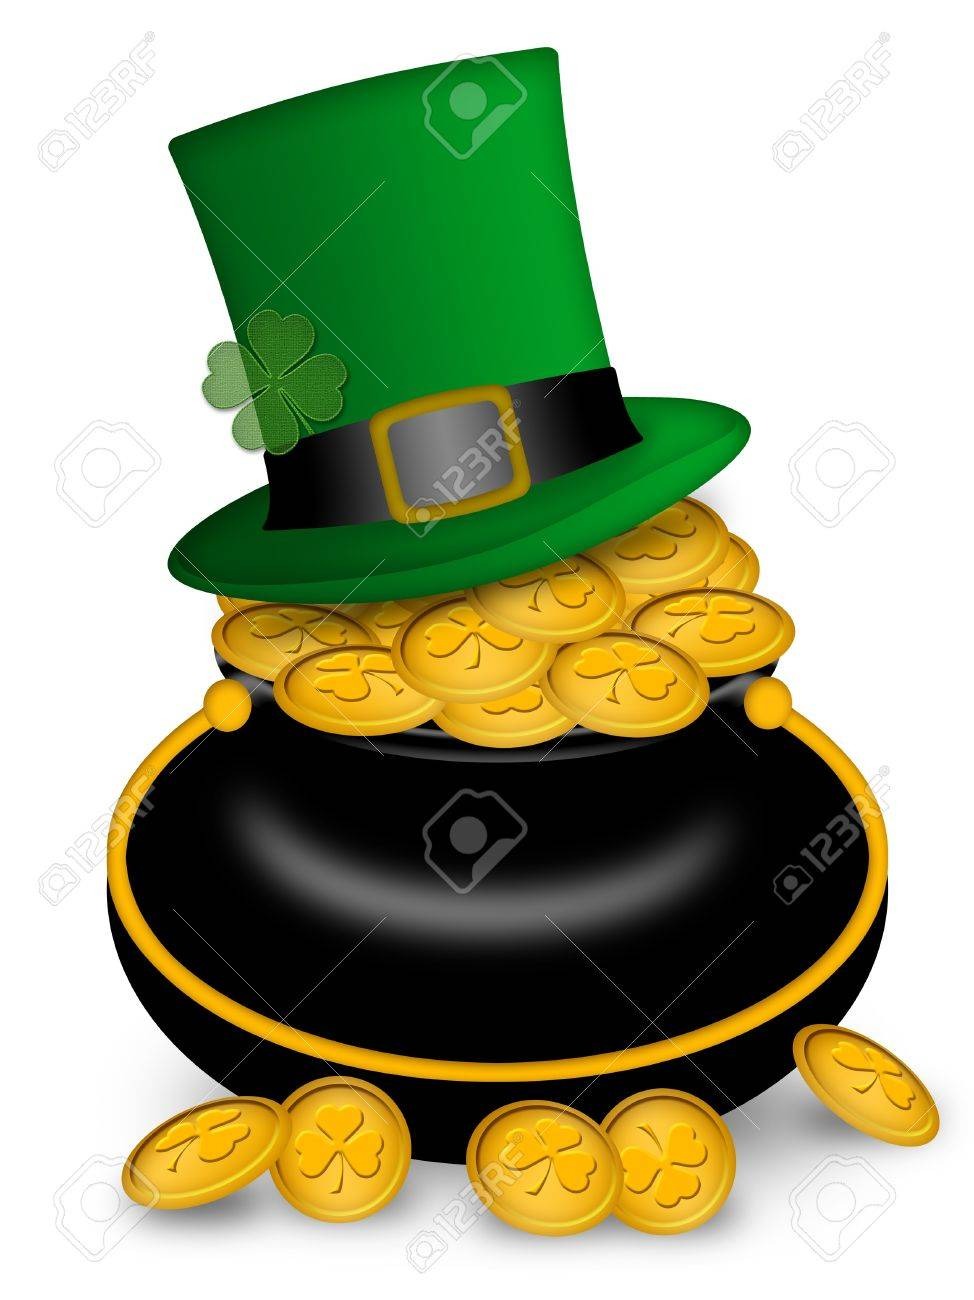 Green Pot Of Gold Clipart Hat on Pot of Gold Coins